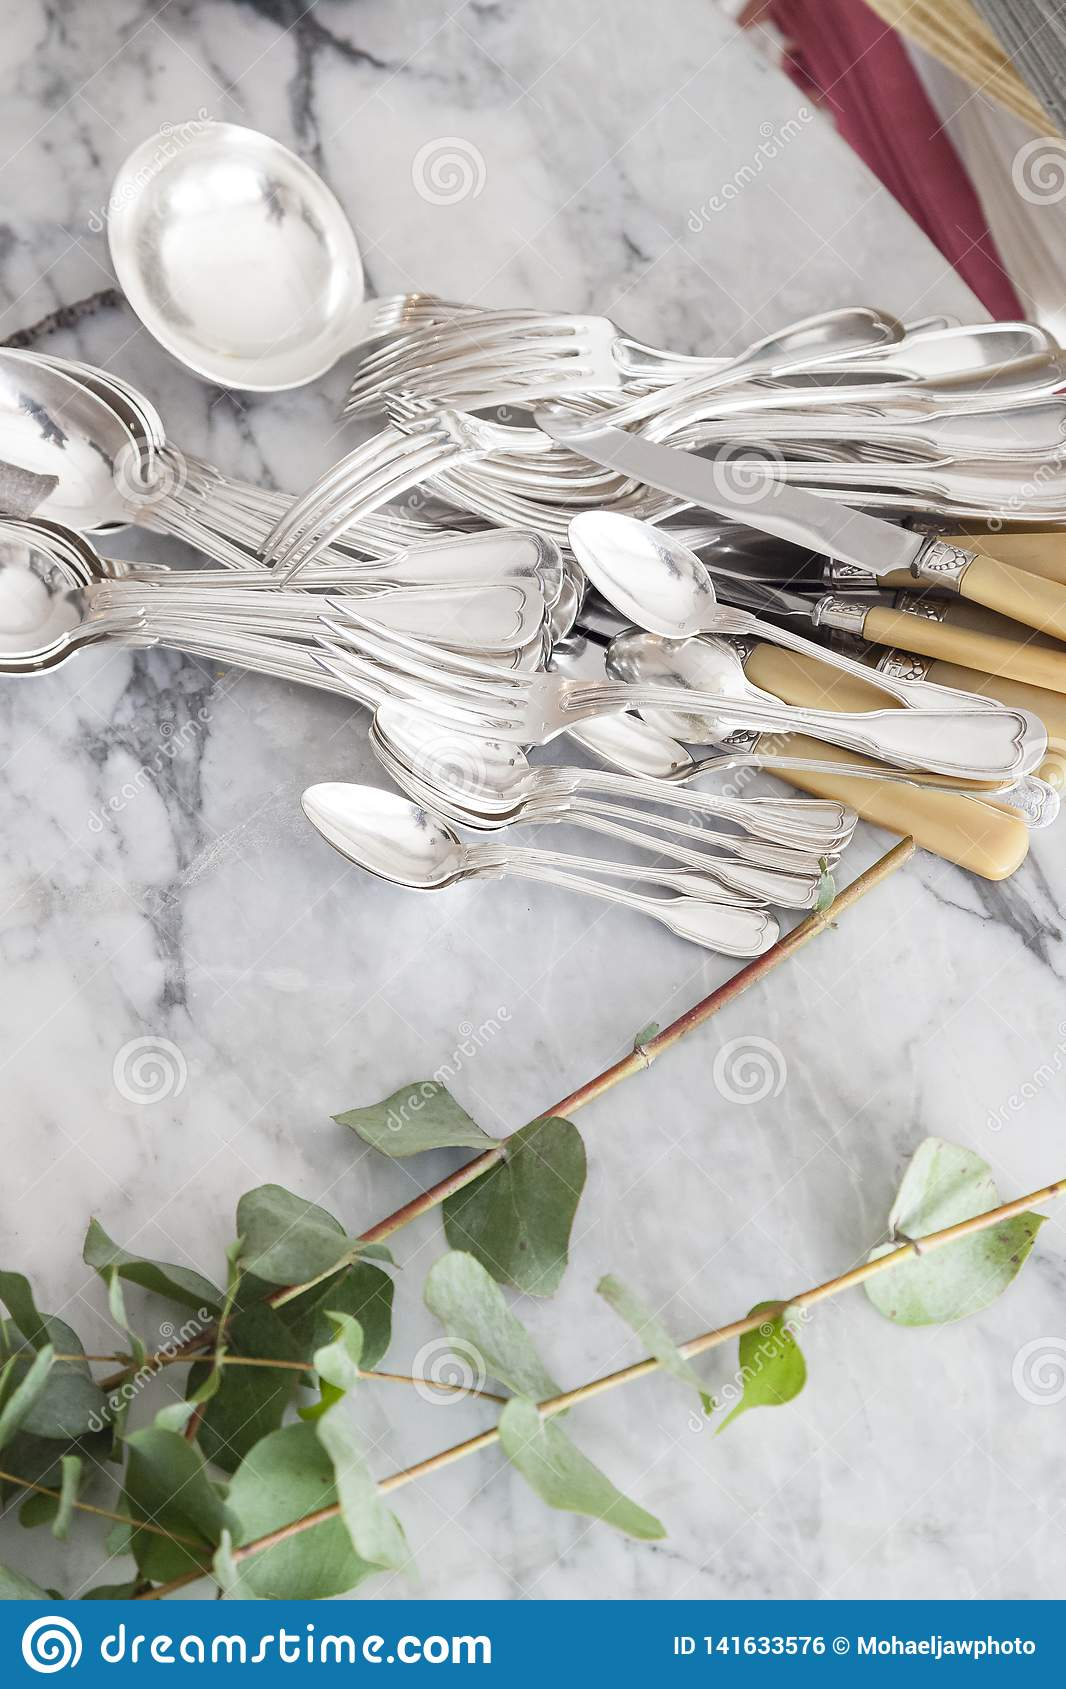 Vintage french cutlery concept with leabes and marble